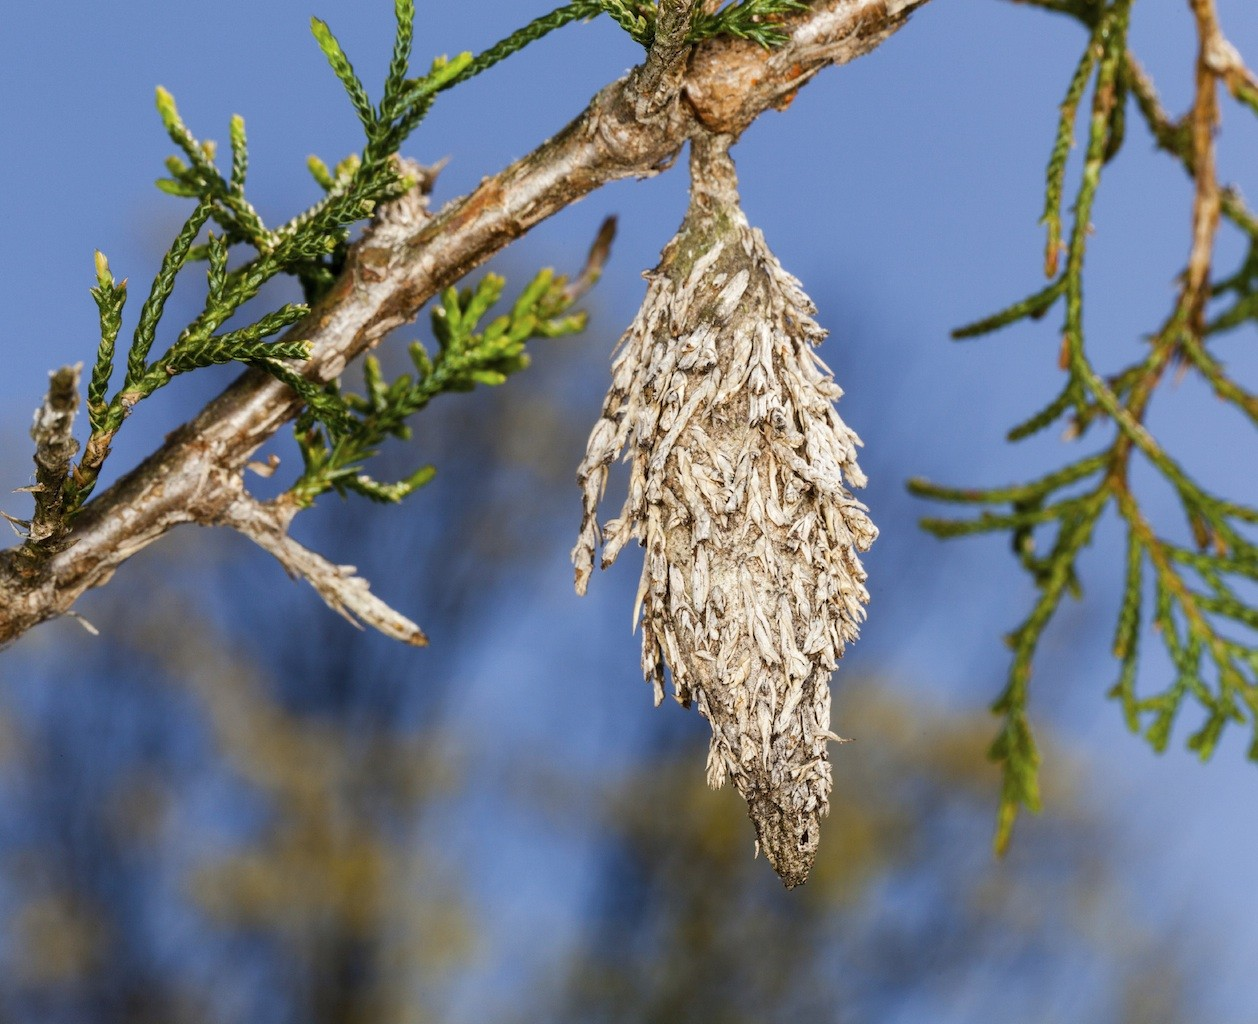 bagworm control and treatment for the yard and garden plants